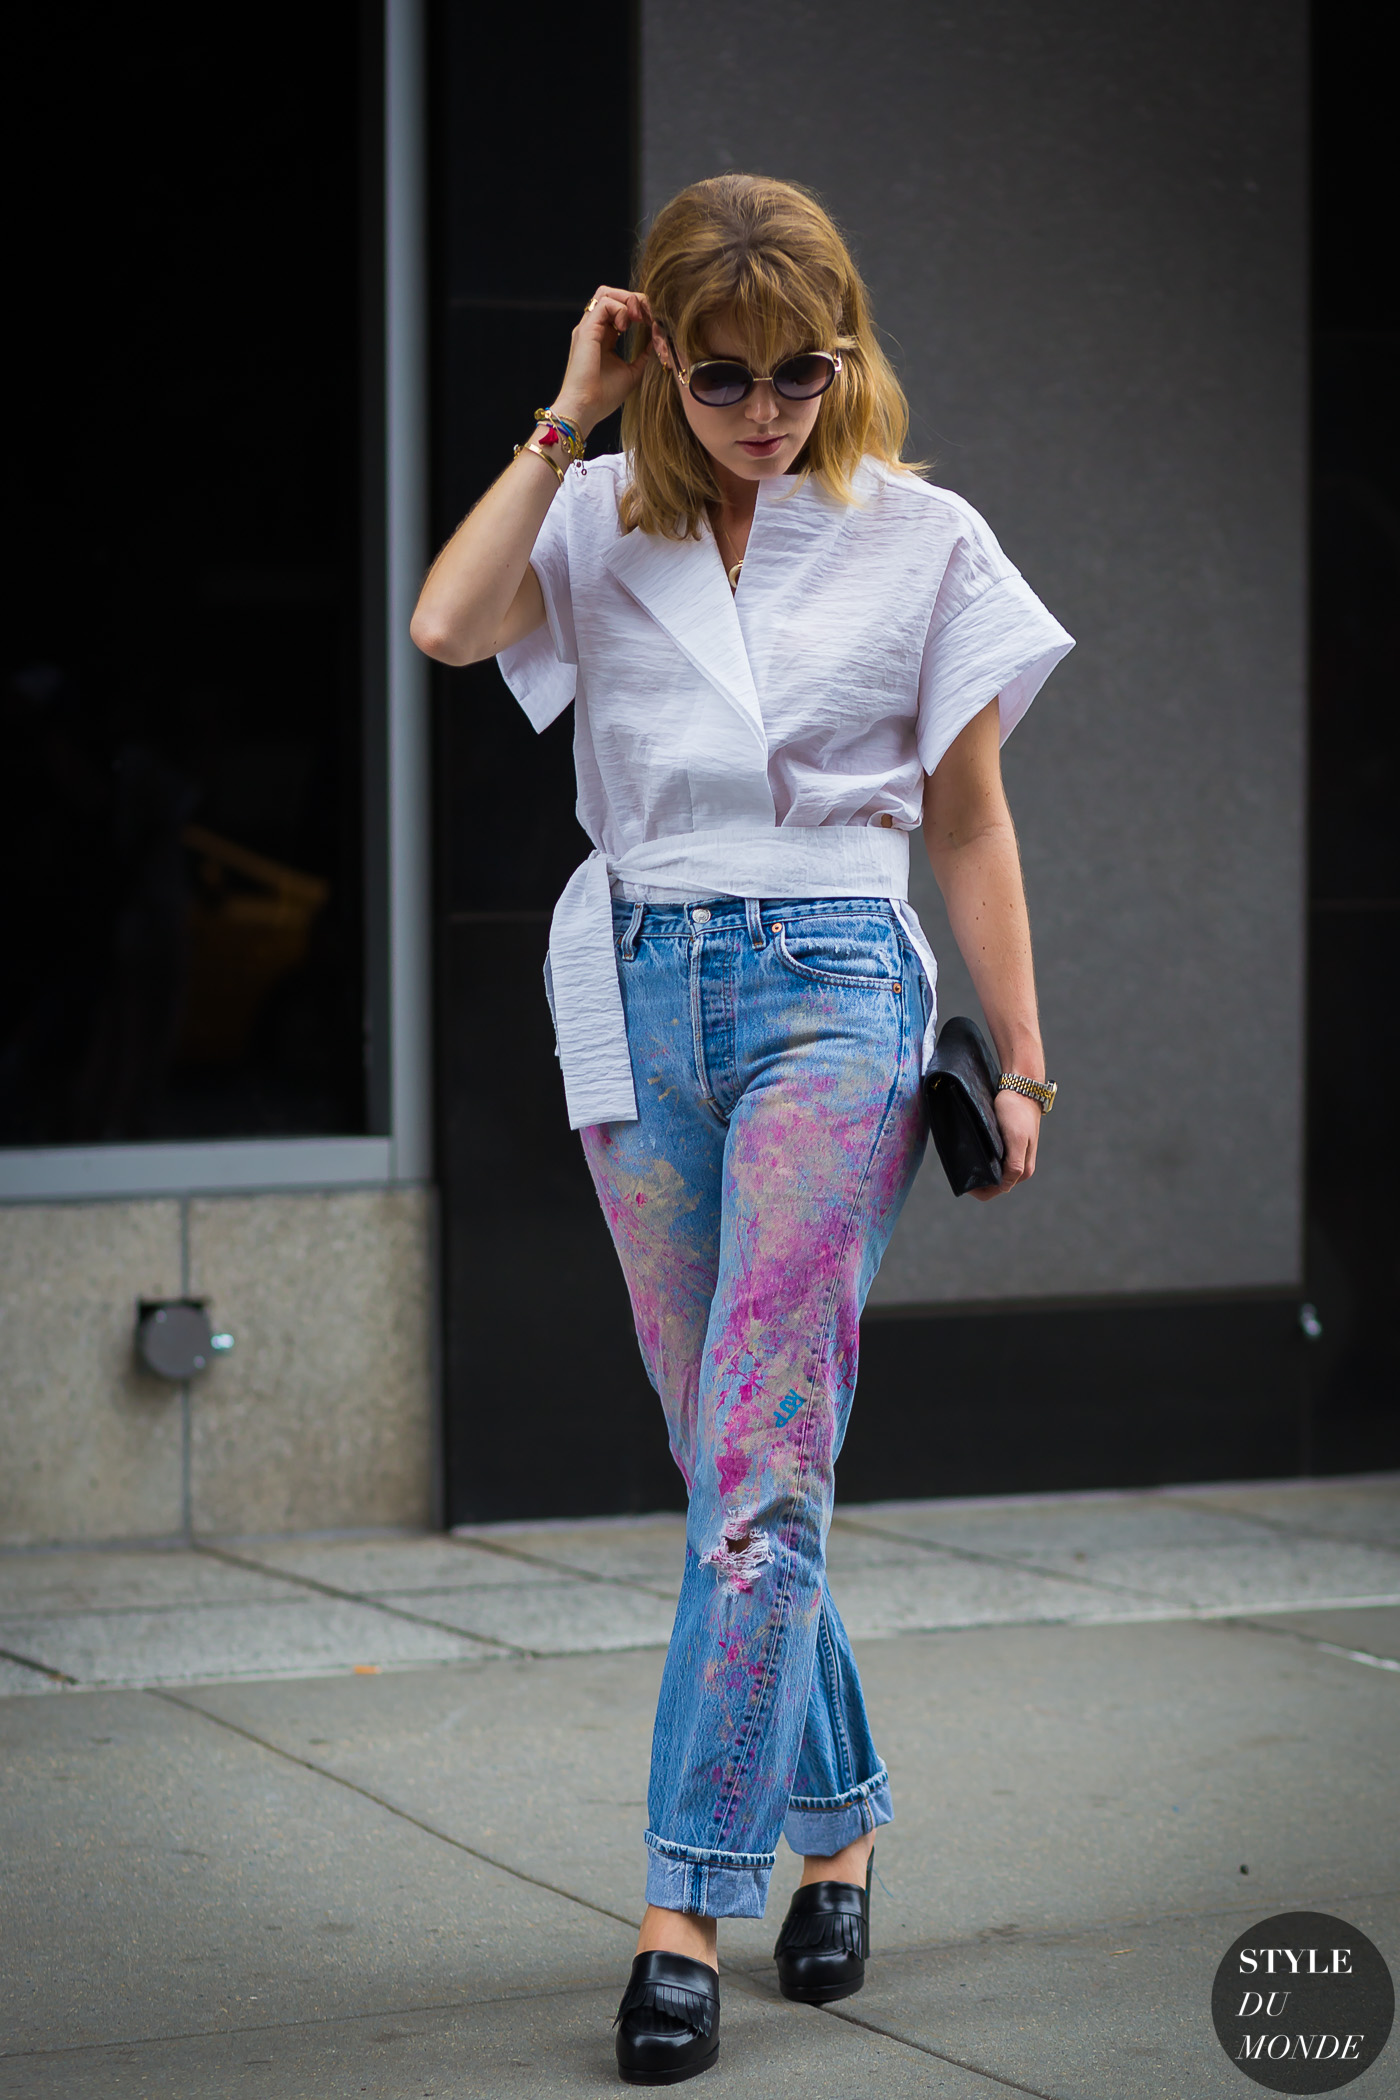 Annabel Rosendahl Street Style Street Fashion Streetsnaps by STYLEDUMONDE Street Style Fashion Photography